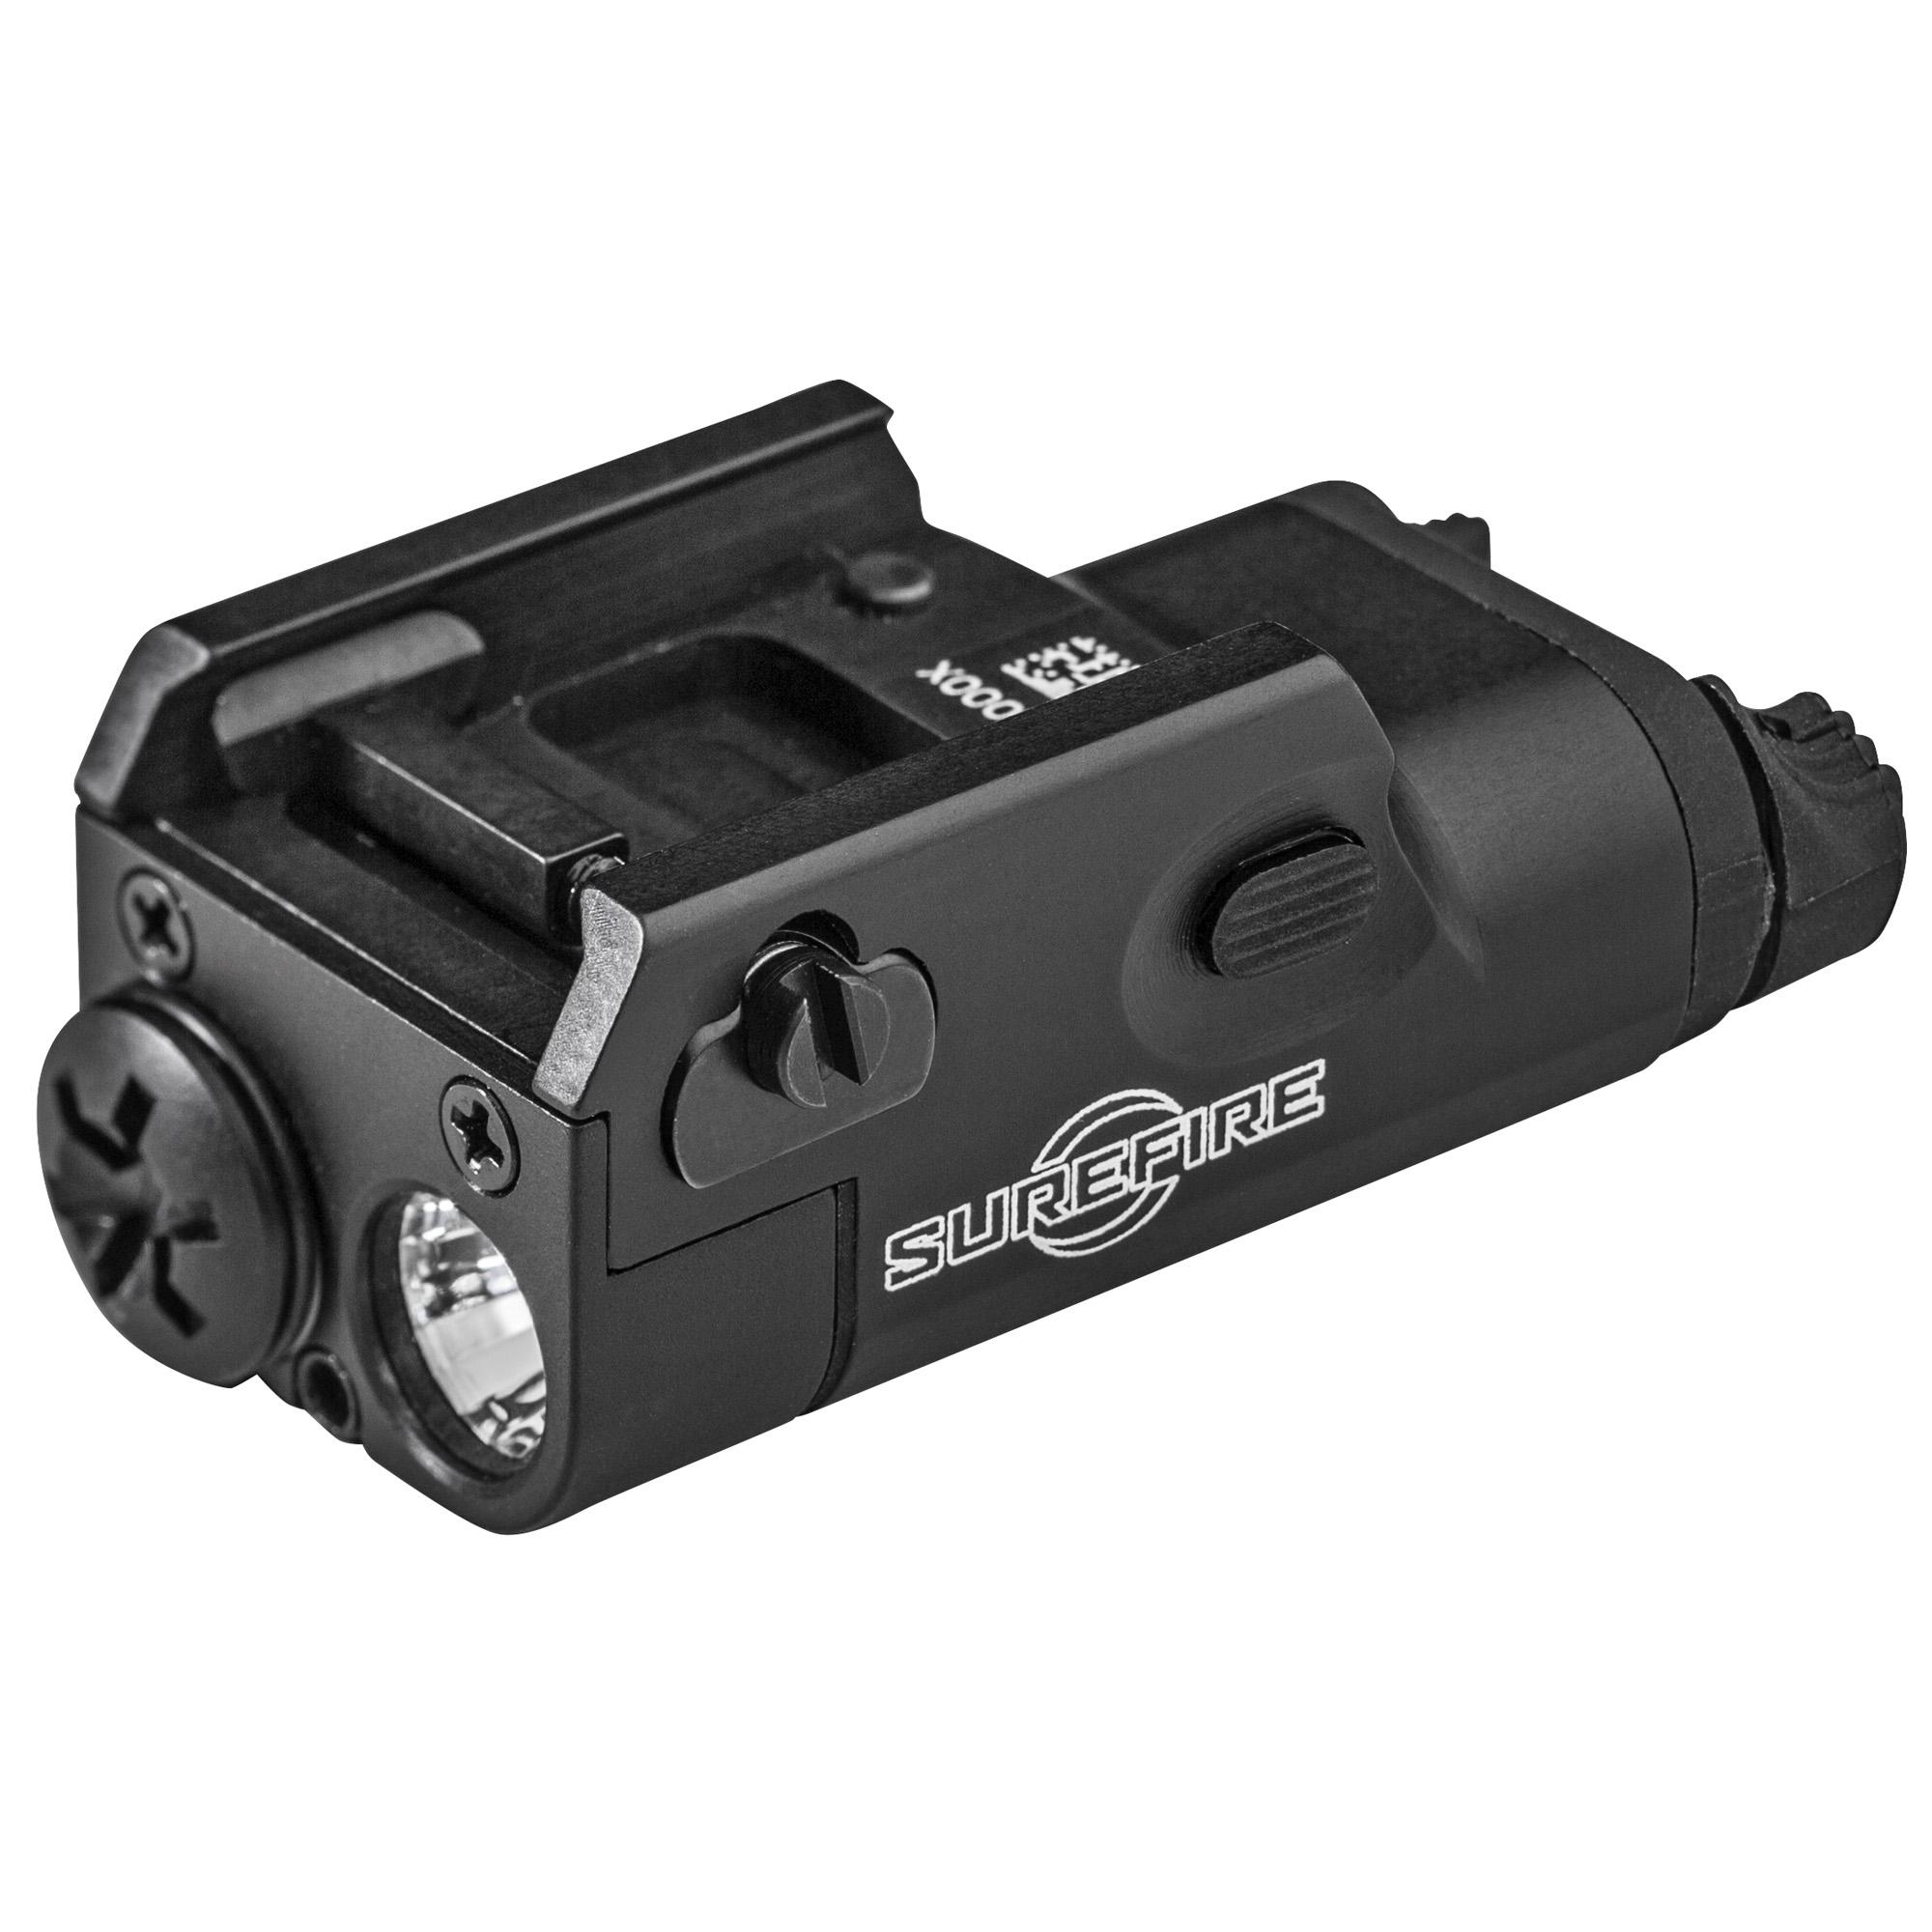 Surefire Xc1 Cmp Pistol Light 300lum XC1-B Photo 1